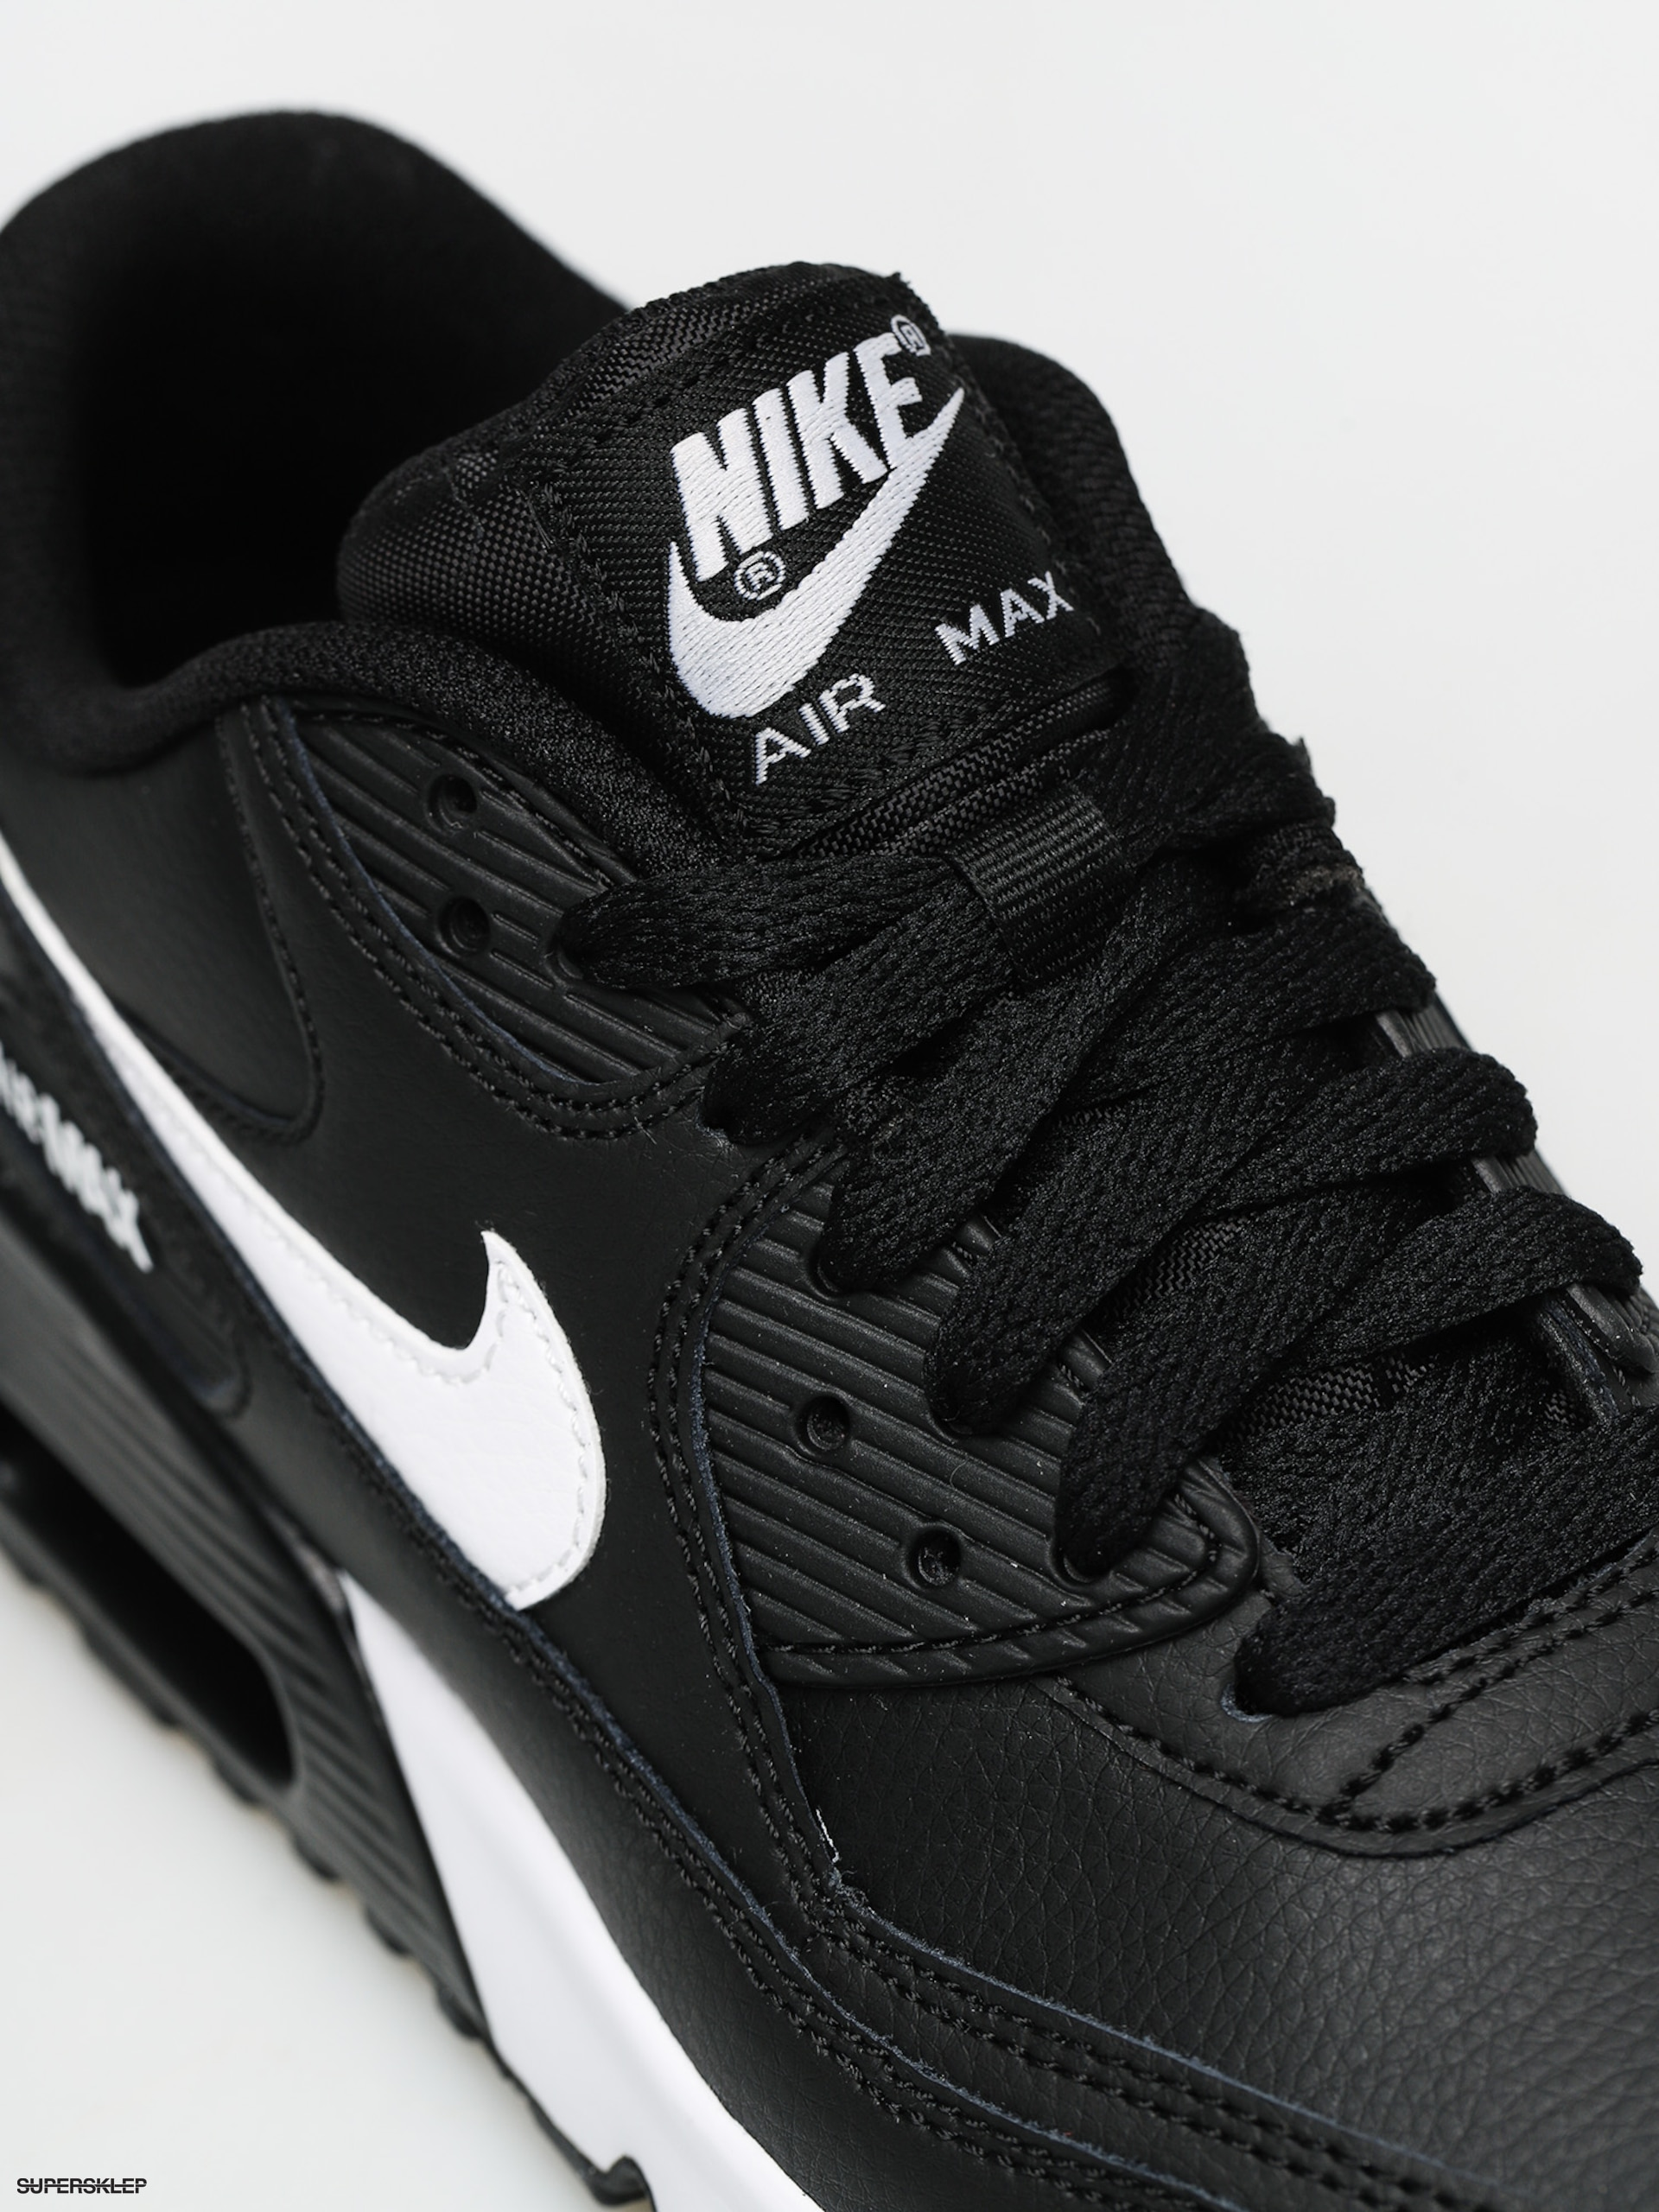 33 Best Buty Air Max 90 images | Buty, Nike, Buty sportowe